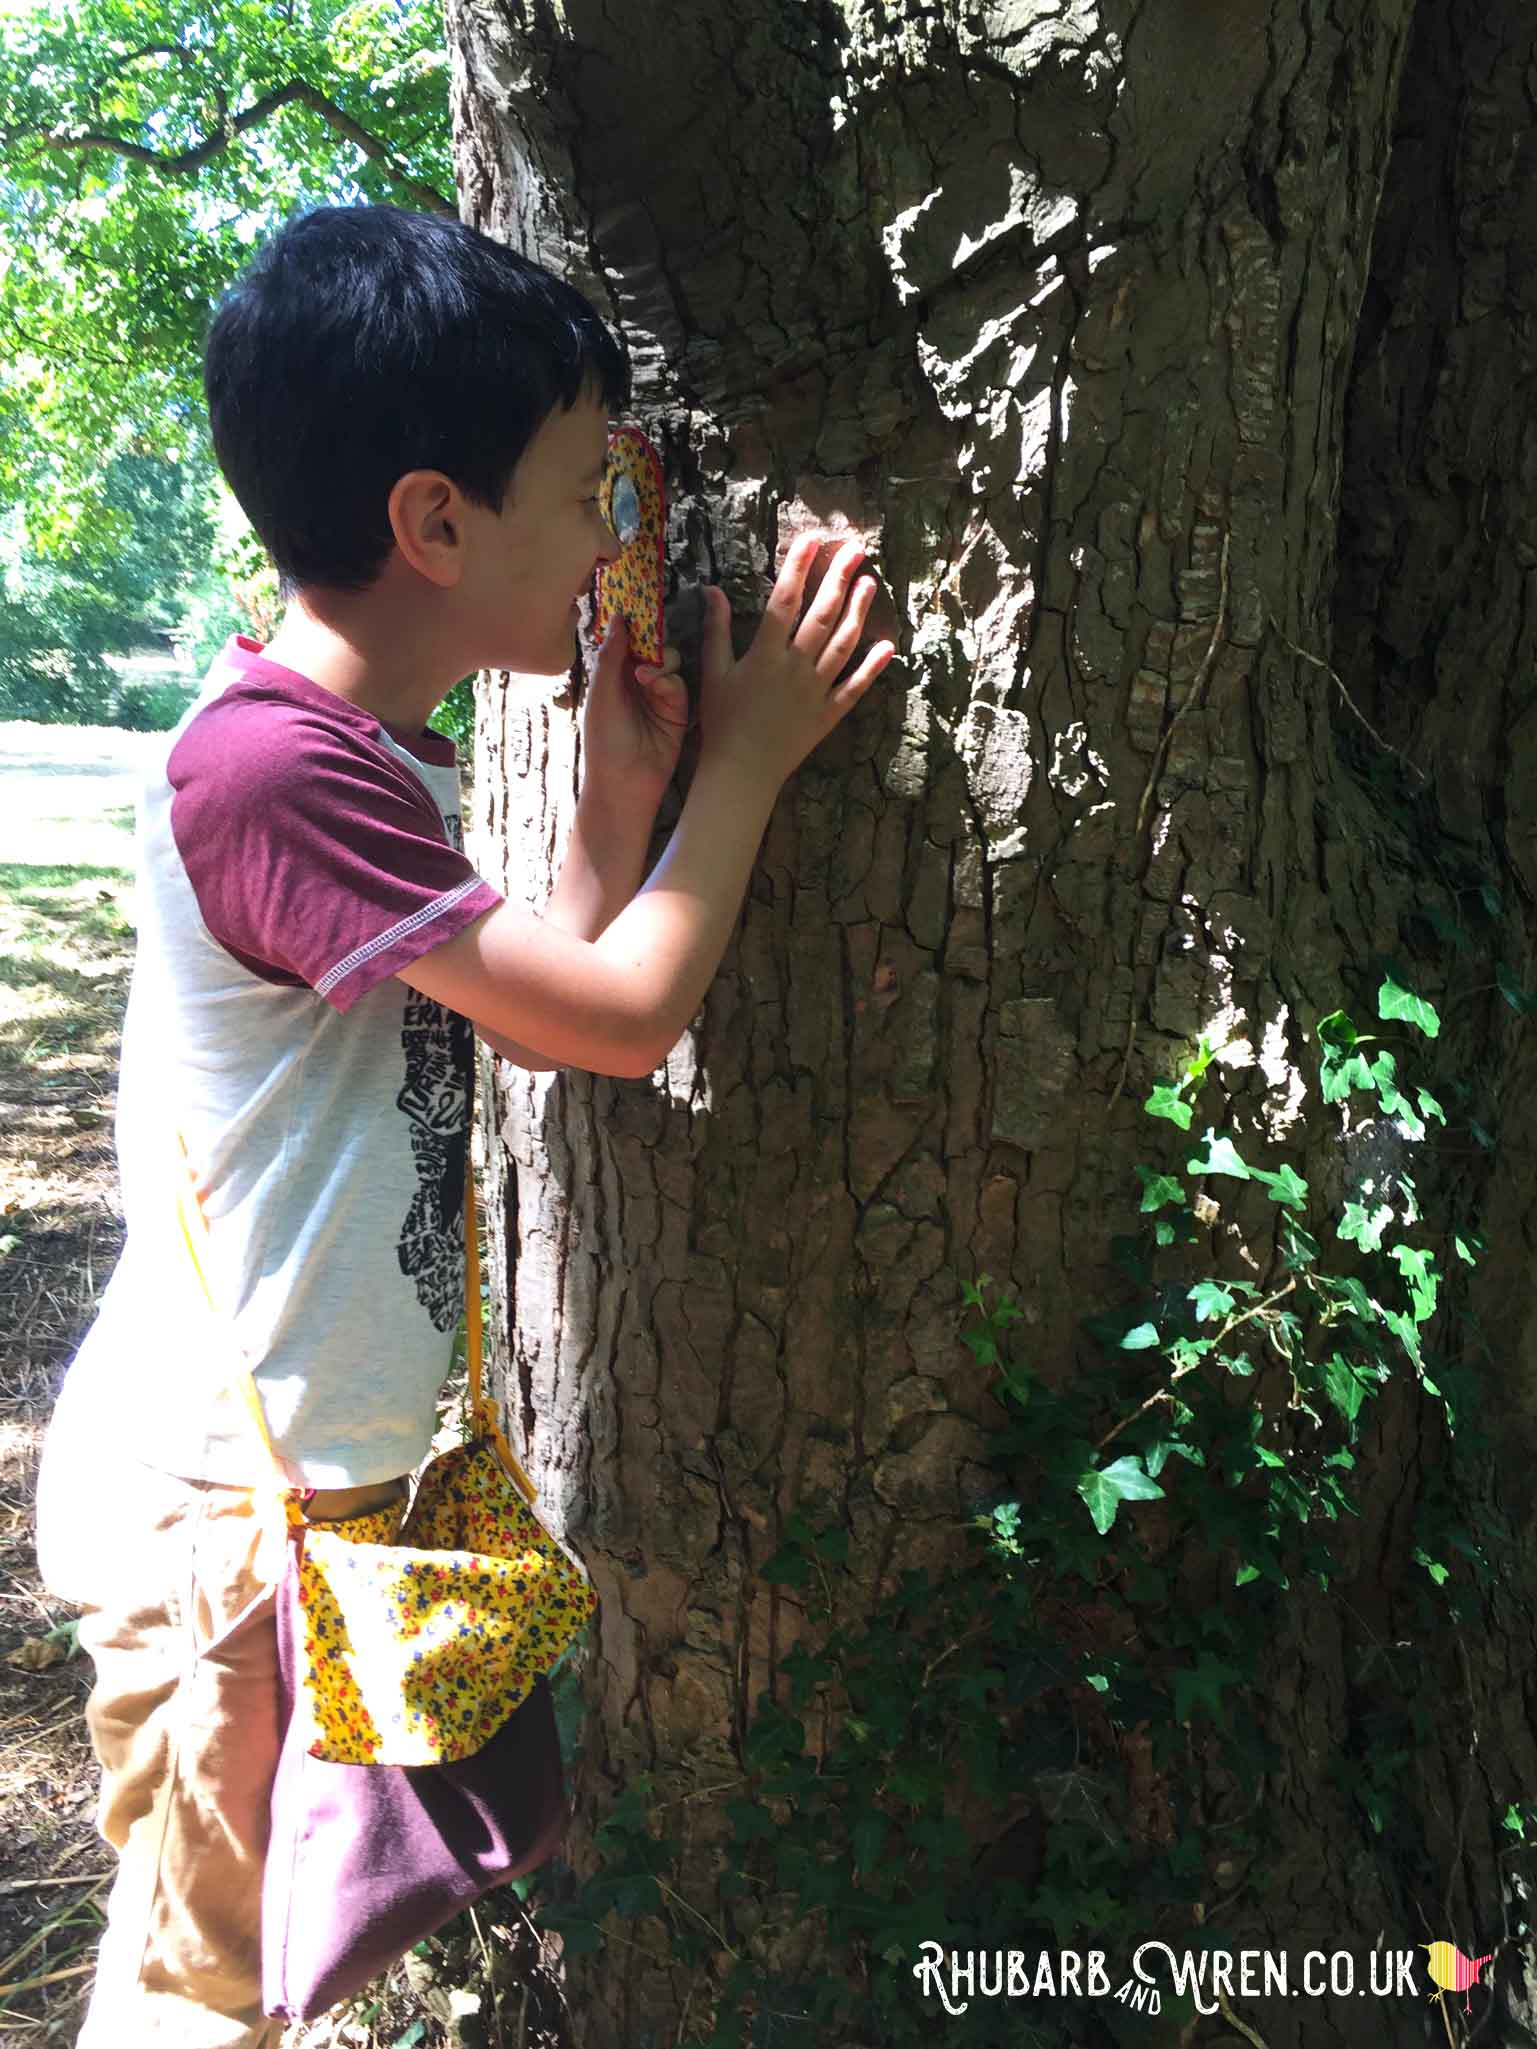 Boy, wearing nature explorer bag, examining tree through magnifying glass